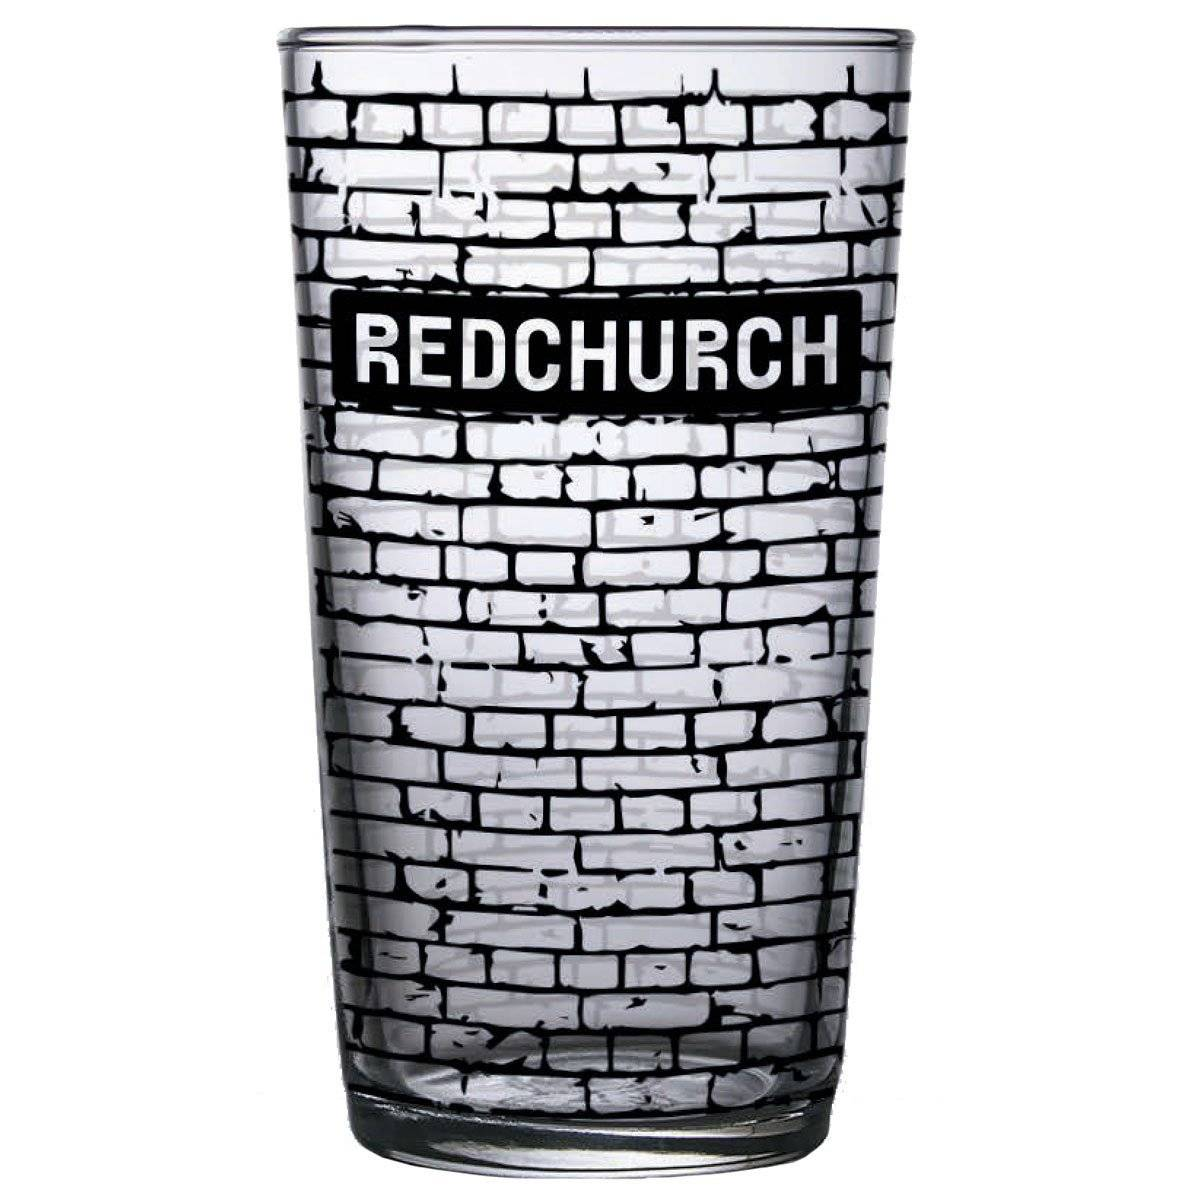 Redchurch Brewery Redchurch Beer Glass - 330ml size